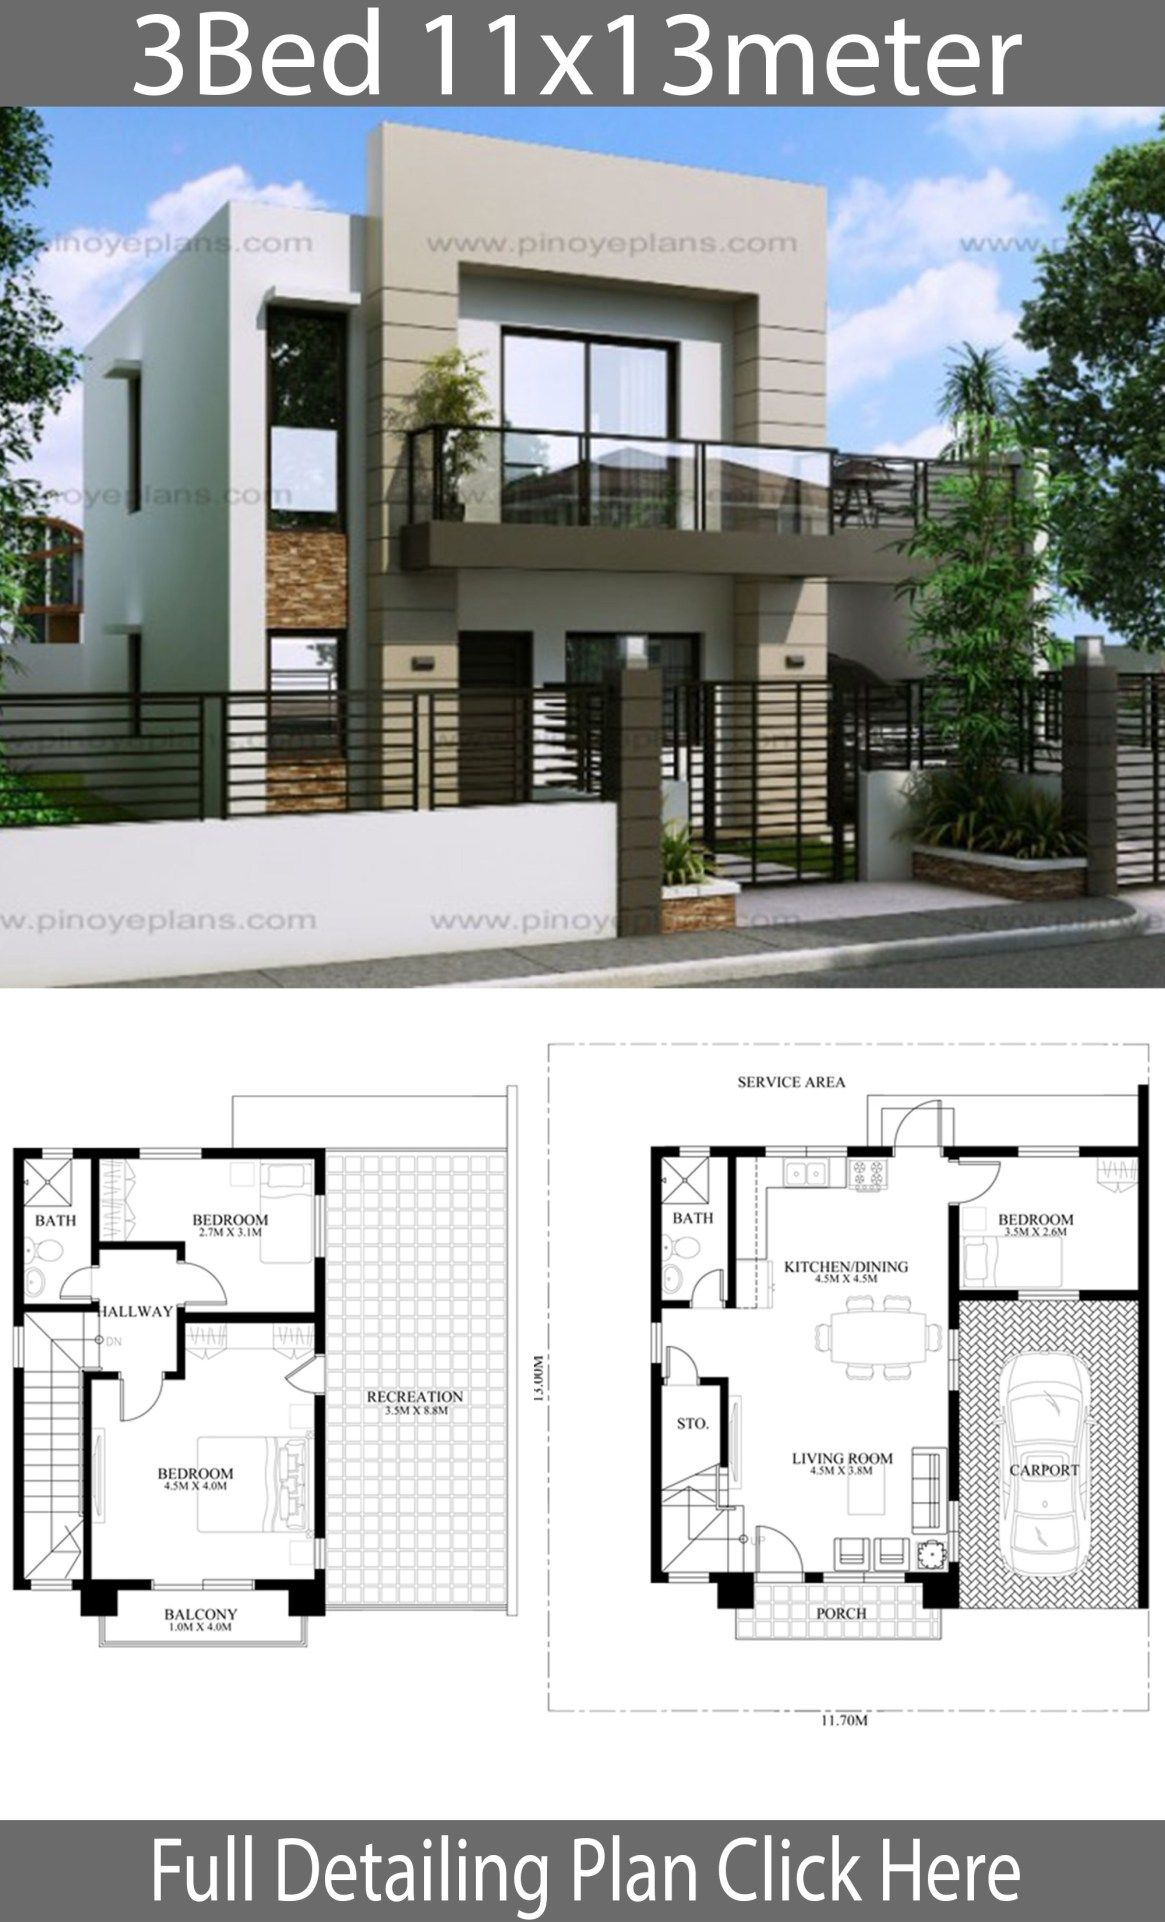 House Design 11x13m With 3 Bedrooms Home Design With Plansearch Philippines House Design Home Design Floor Plans Model House Plan